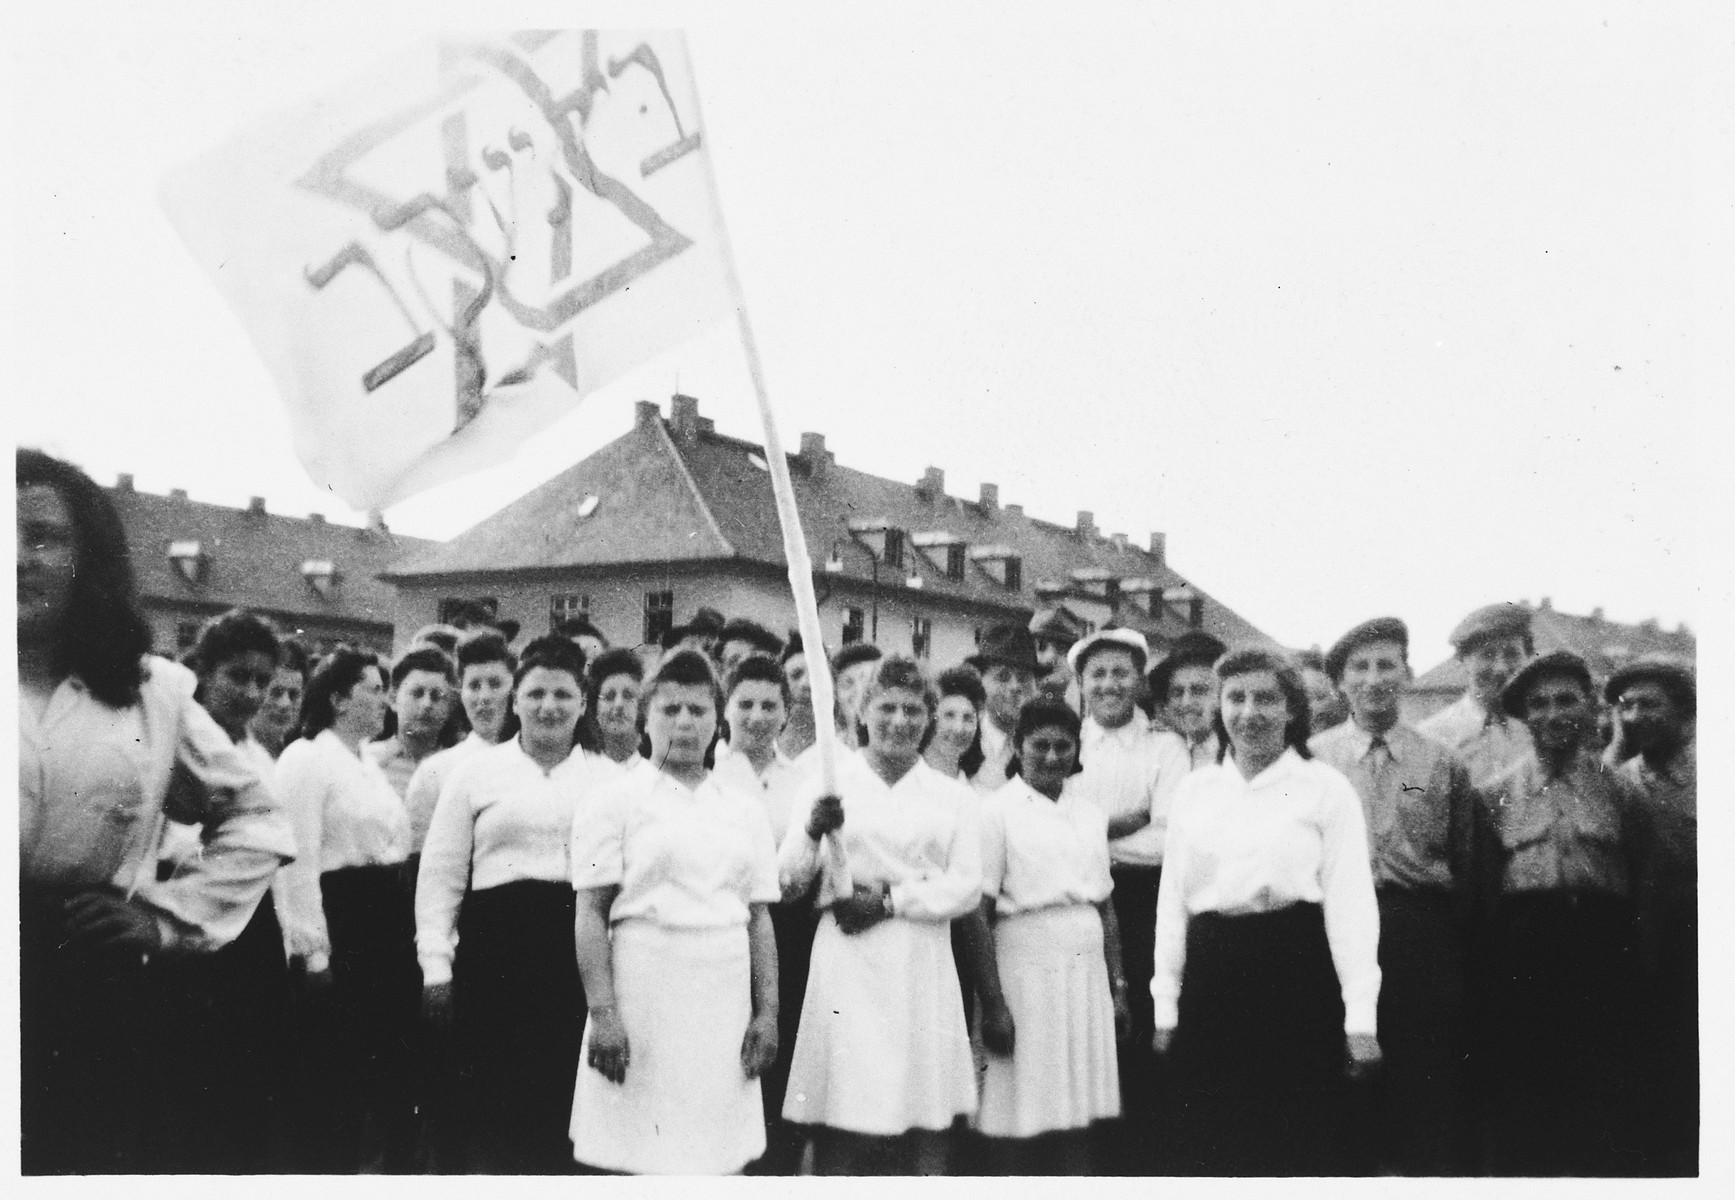 Teenagers from the Beit Yaakov religious school for girls, wave a flag during a Zionist demonstration in the Bergen-Belsen displaced persons camp.